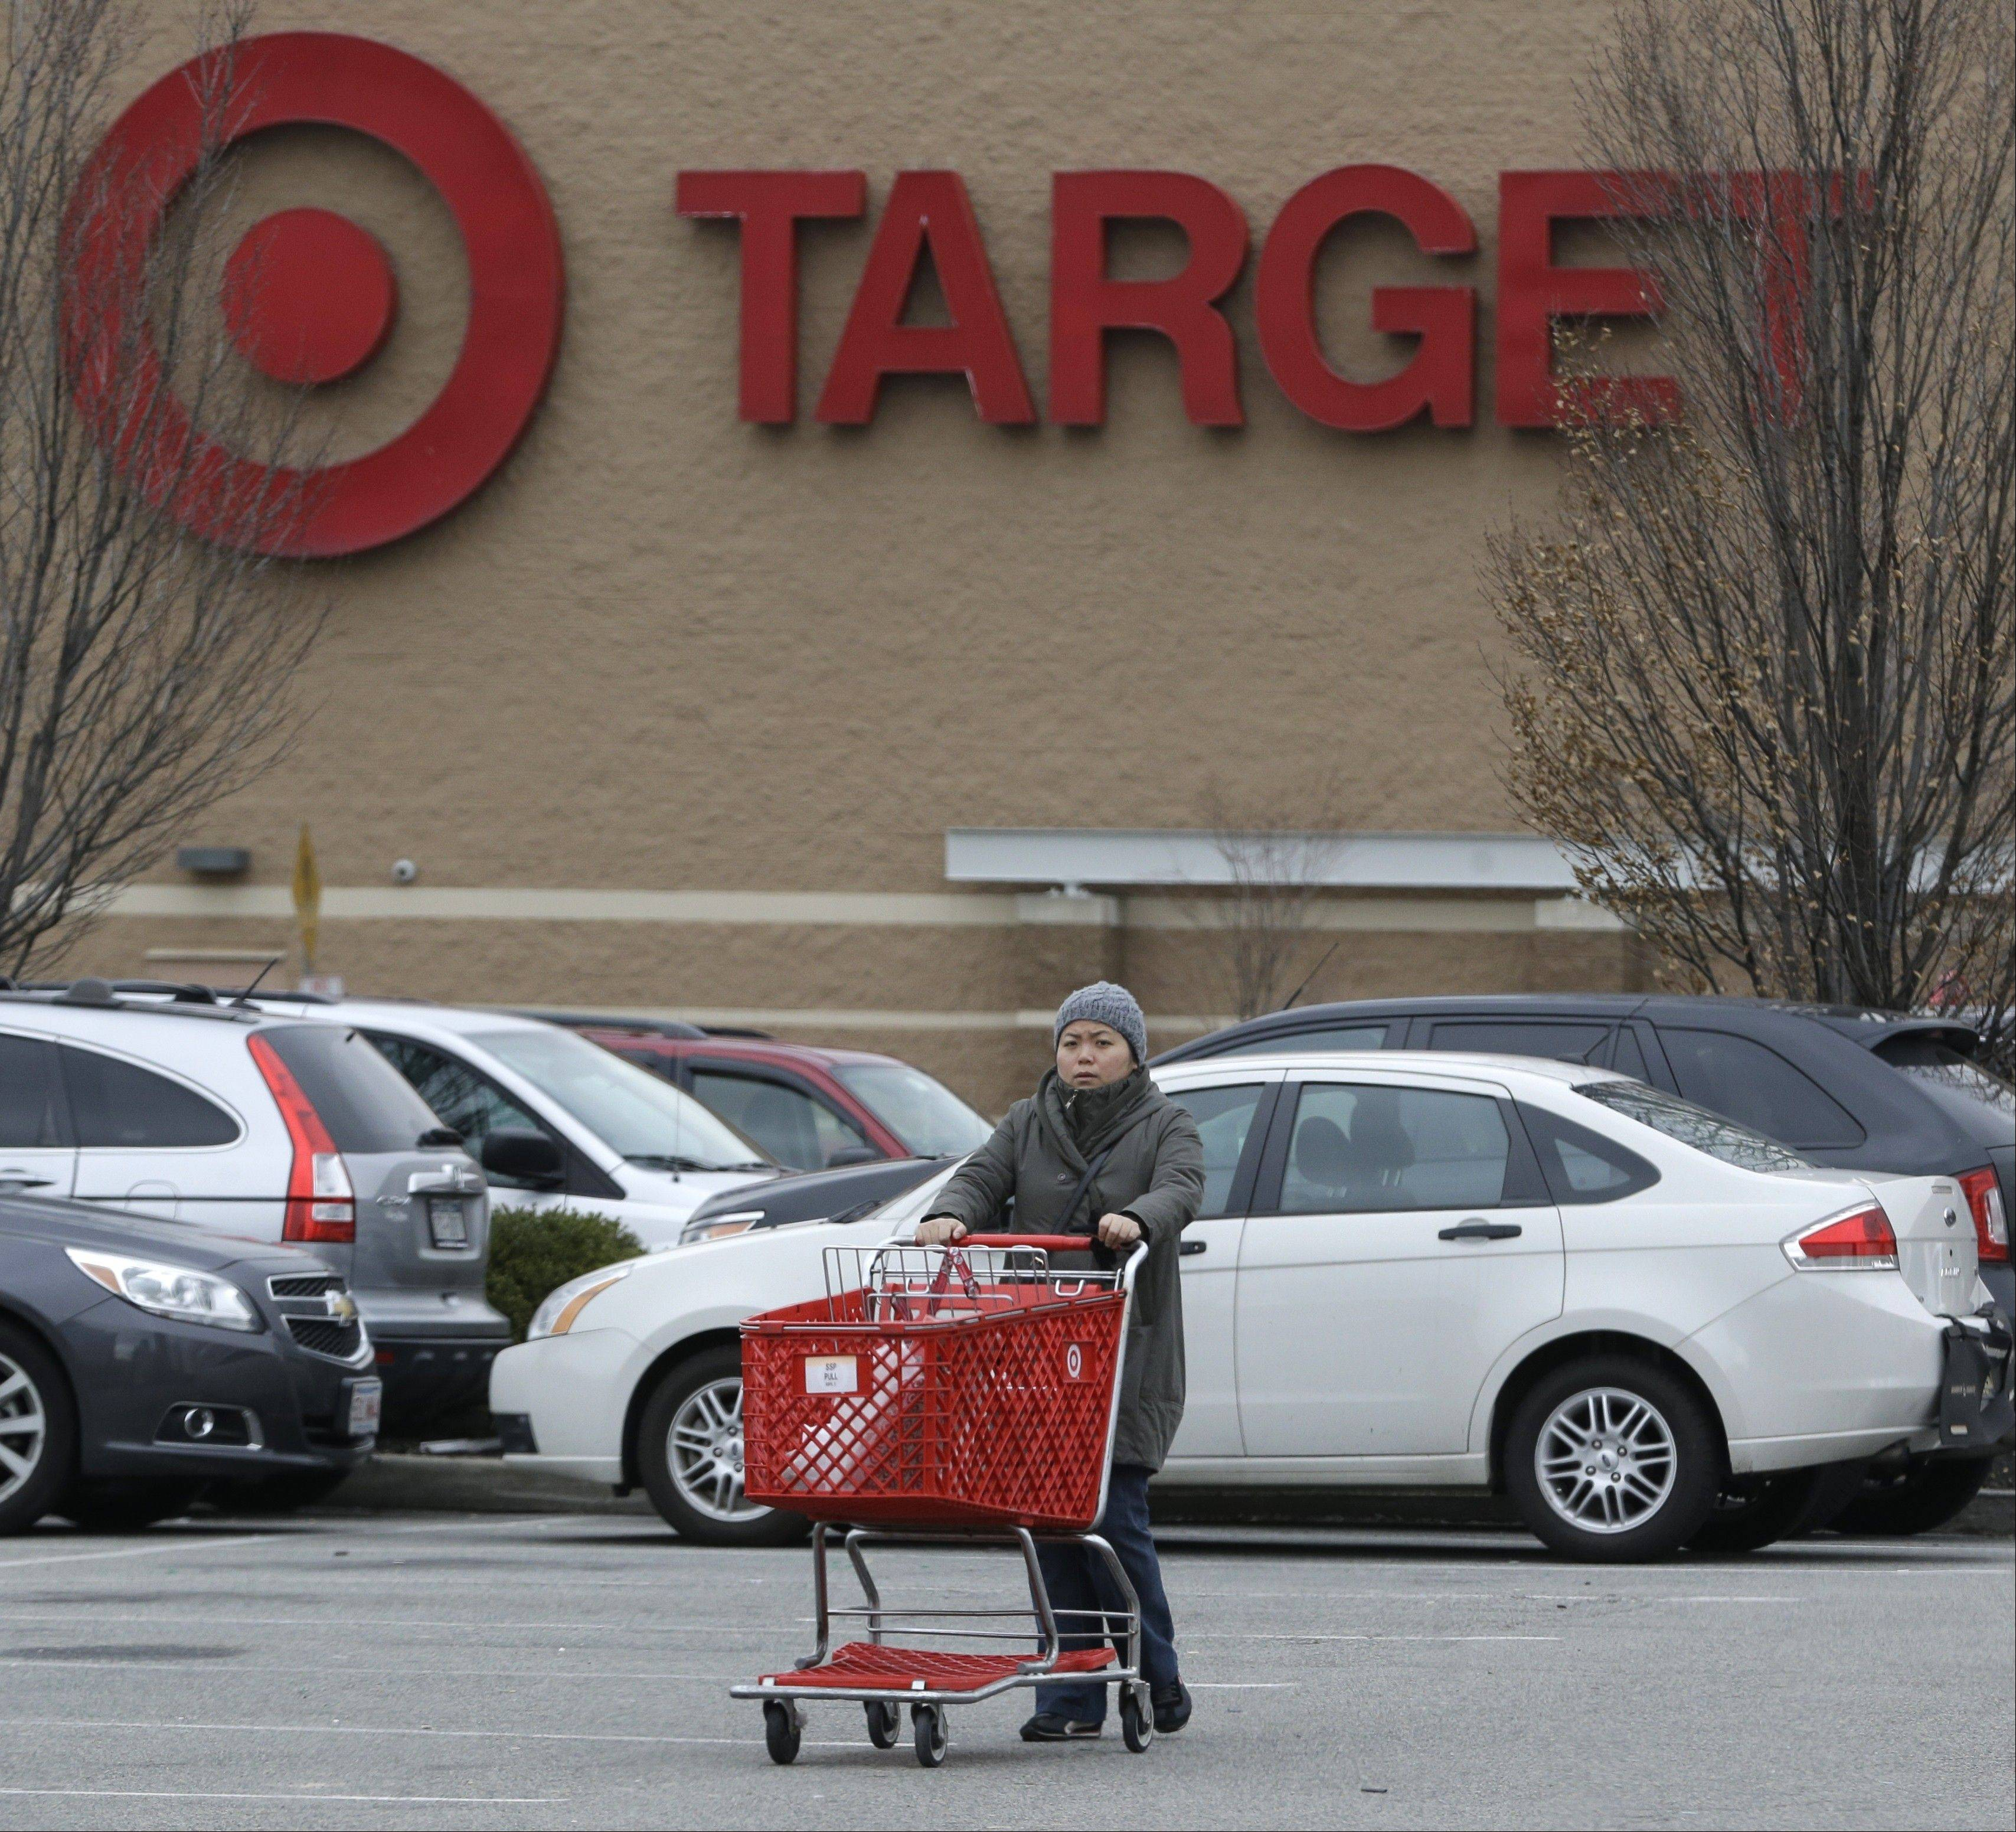 At least one Illinois resident has joined those suing Target after the retail giant disclosed hackers stole millions of customer accounts.